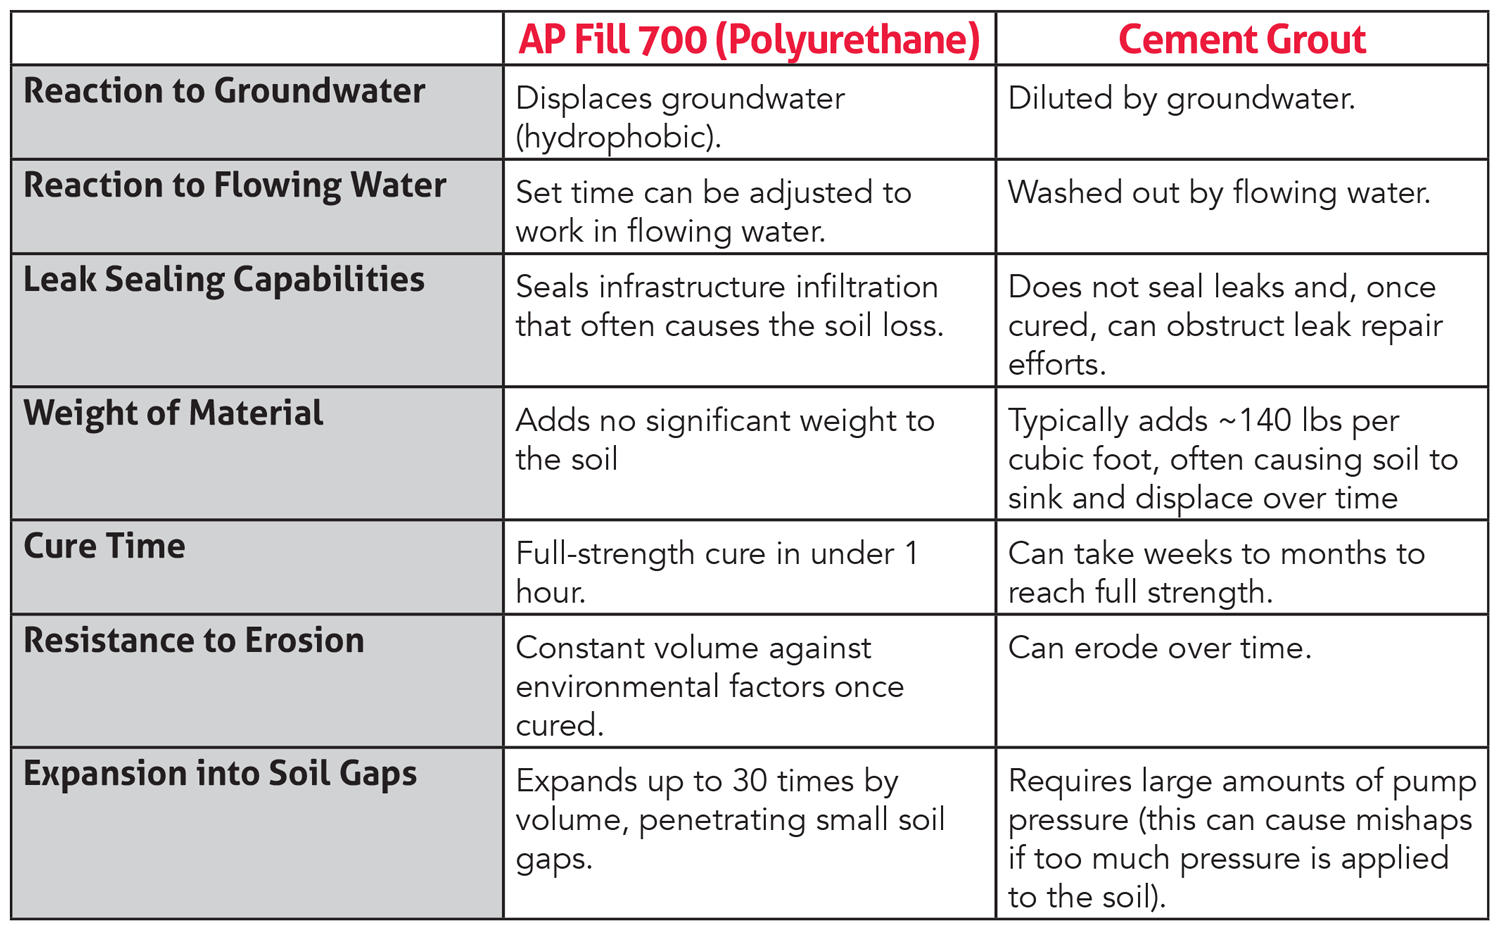 AP-Fill-700-vs-Cement-Grout-for-Soil-Stabilization-1